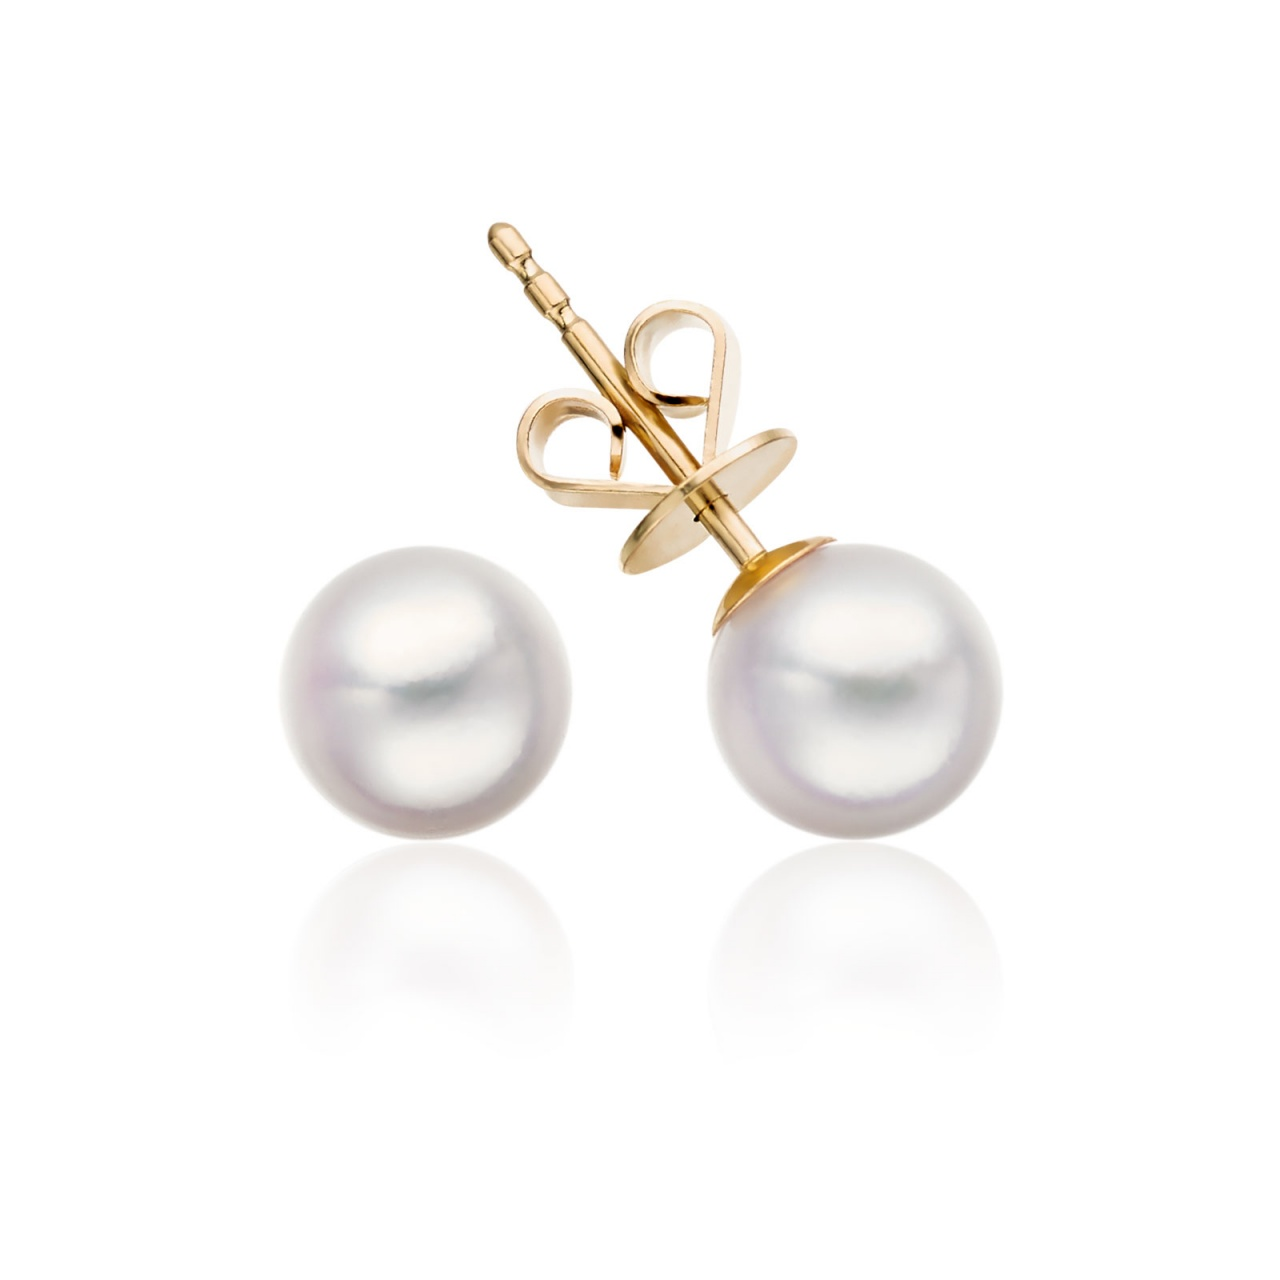 Classic White Akoya Pearl Stud Earrings in 18 Carat Yellow Gold-1